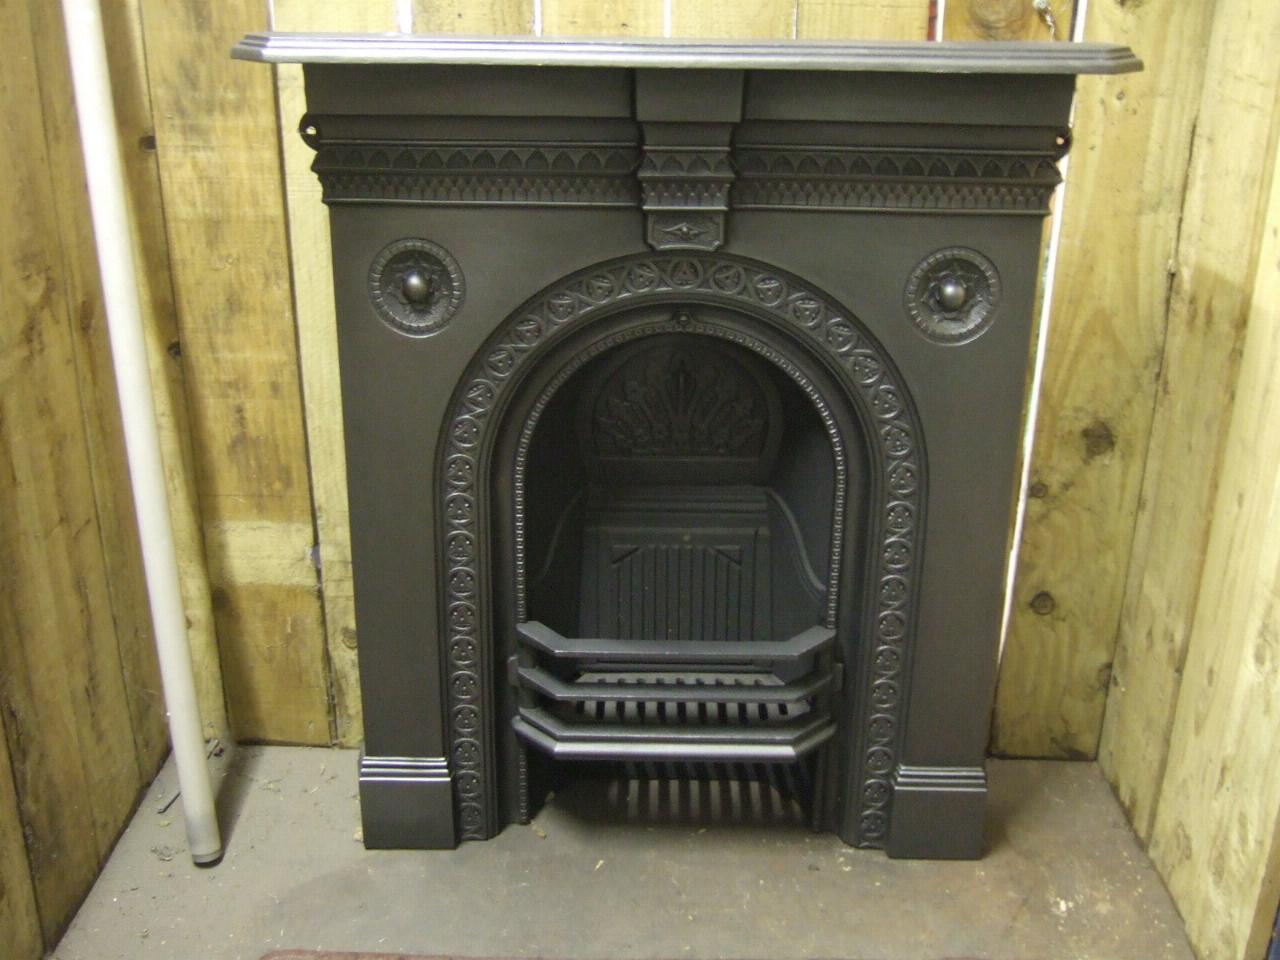 opal phoenix iron fireplaces battlesbridge cast capital black fires fireplace